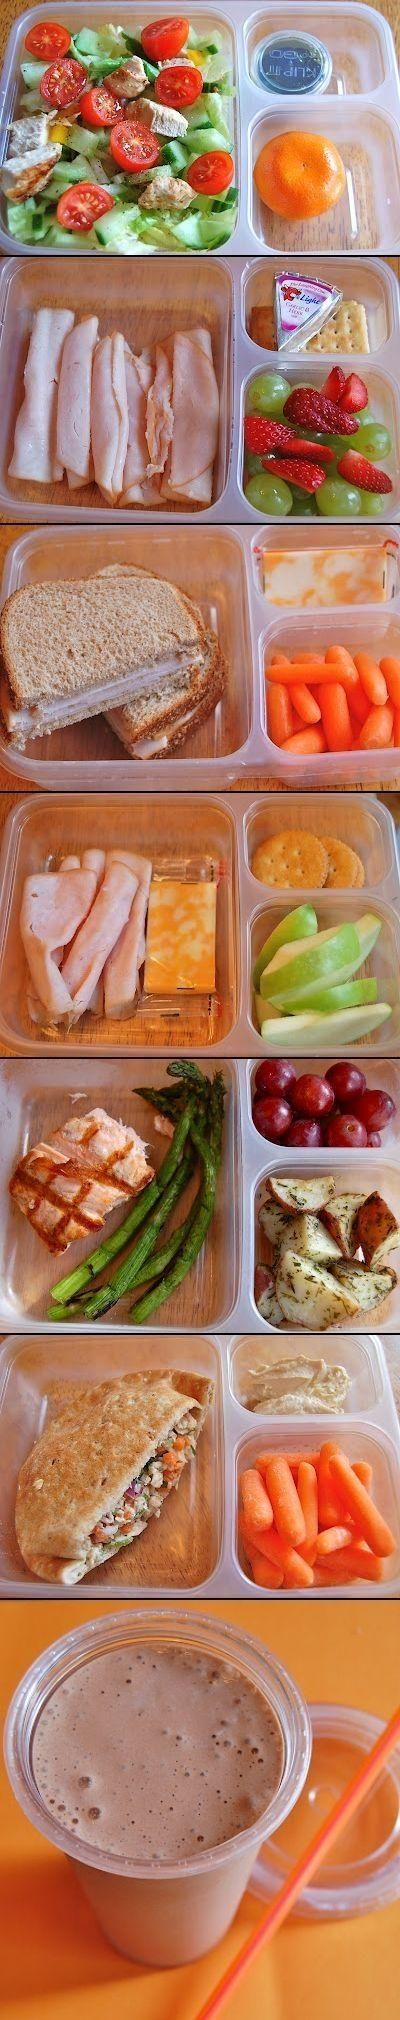 Healthy Lunch Ideas - Joybx by Graybird